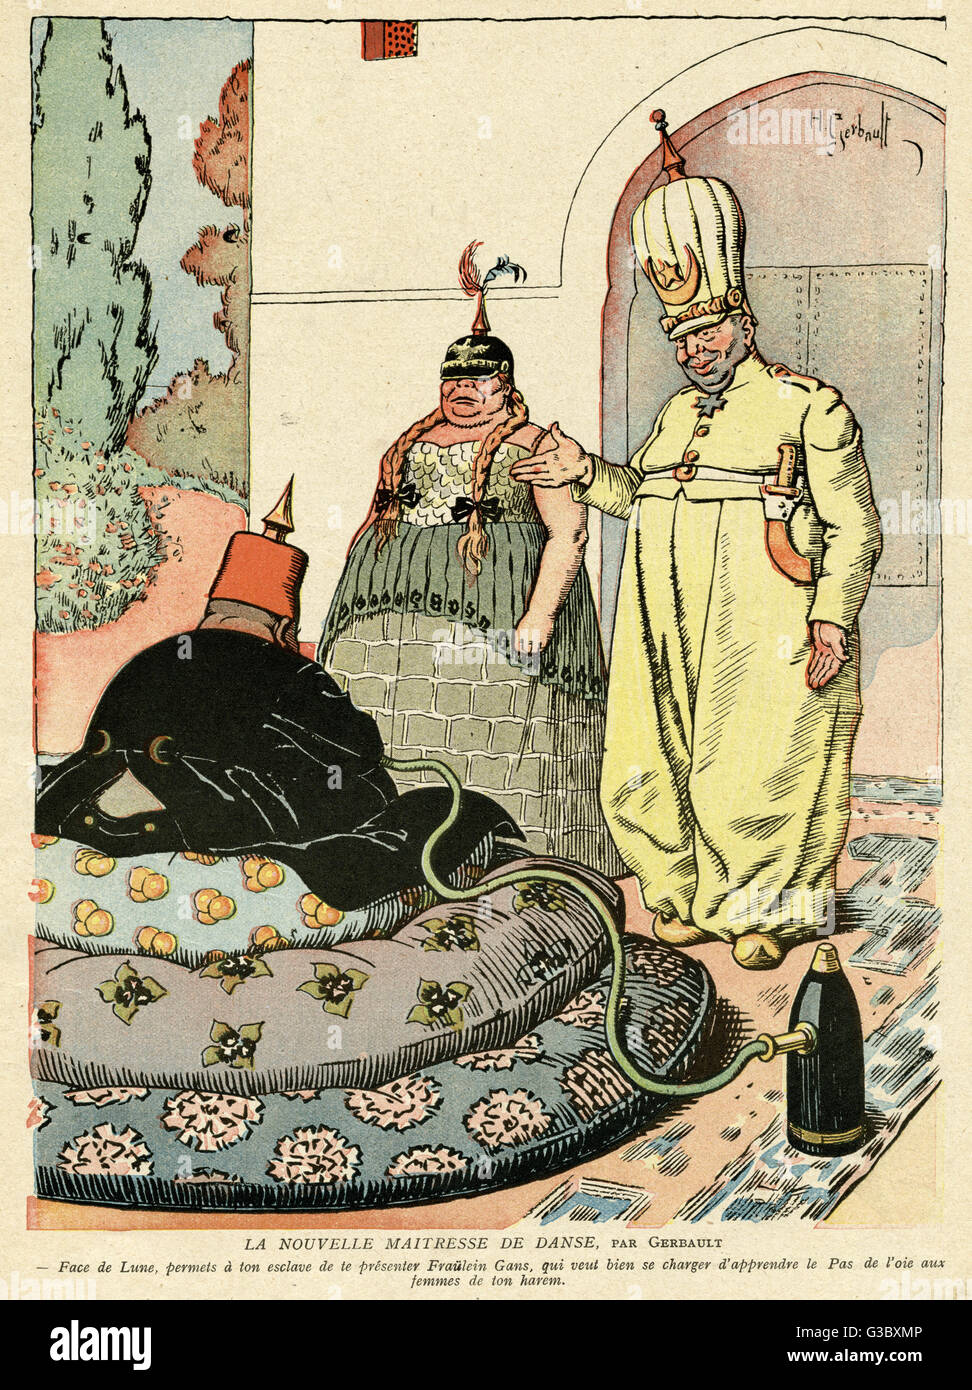 Cartoon, The New Dance Mistress, showing an Austro-Hungarian or German  officer in